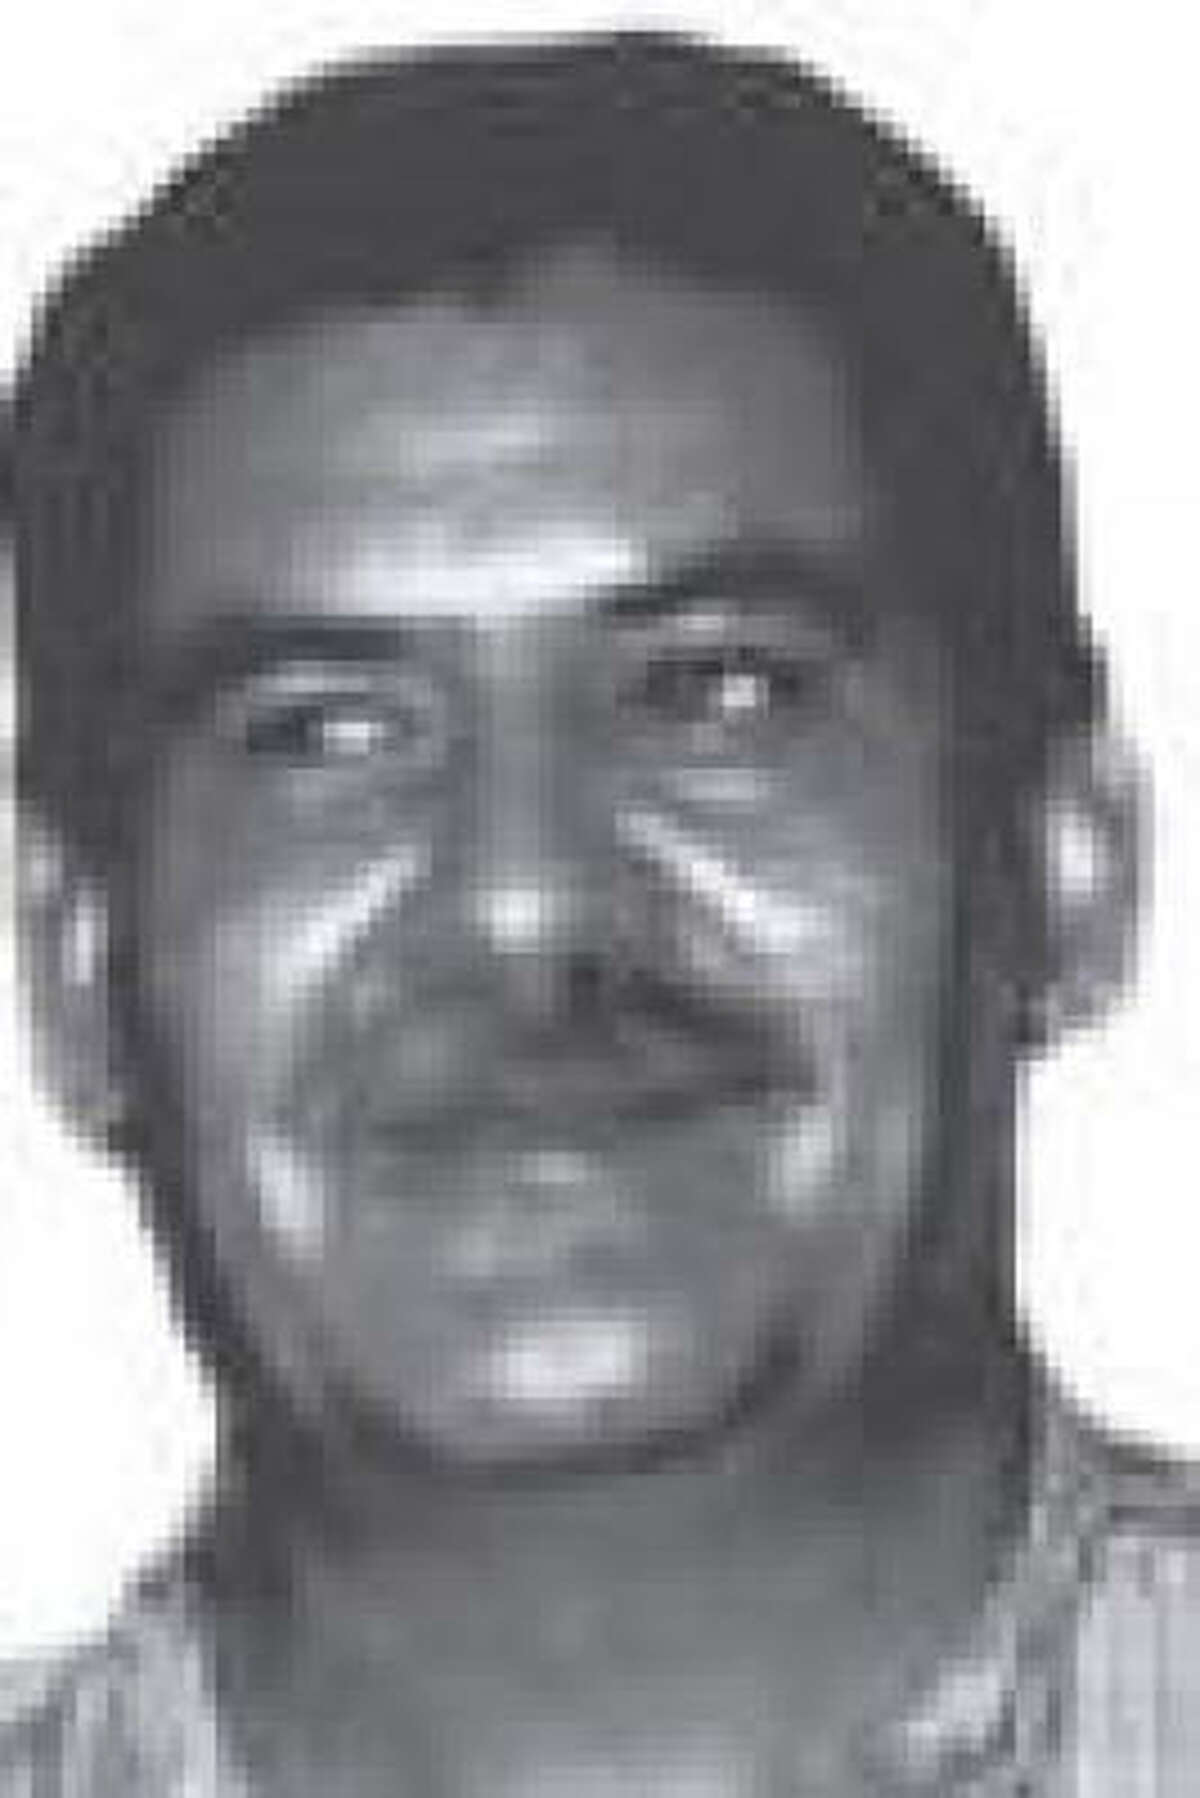 It's unclear whether Jose Manuel Garza Rendon will be deported.